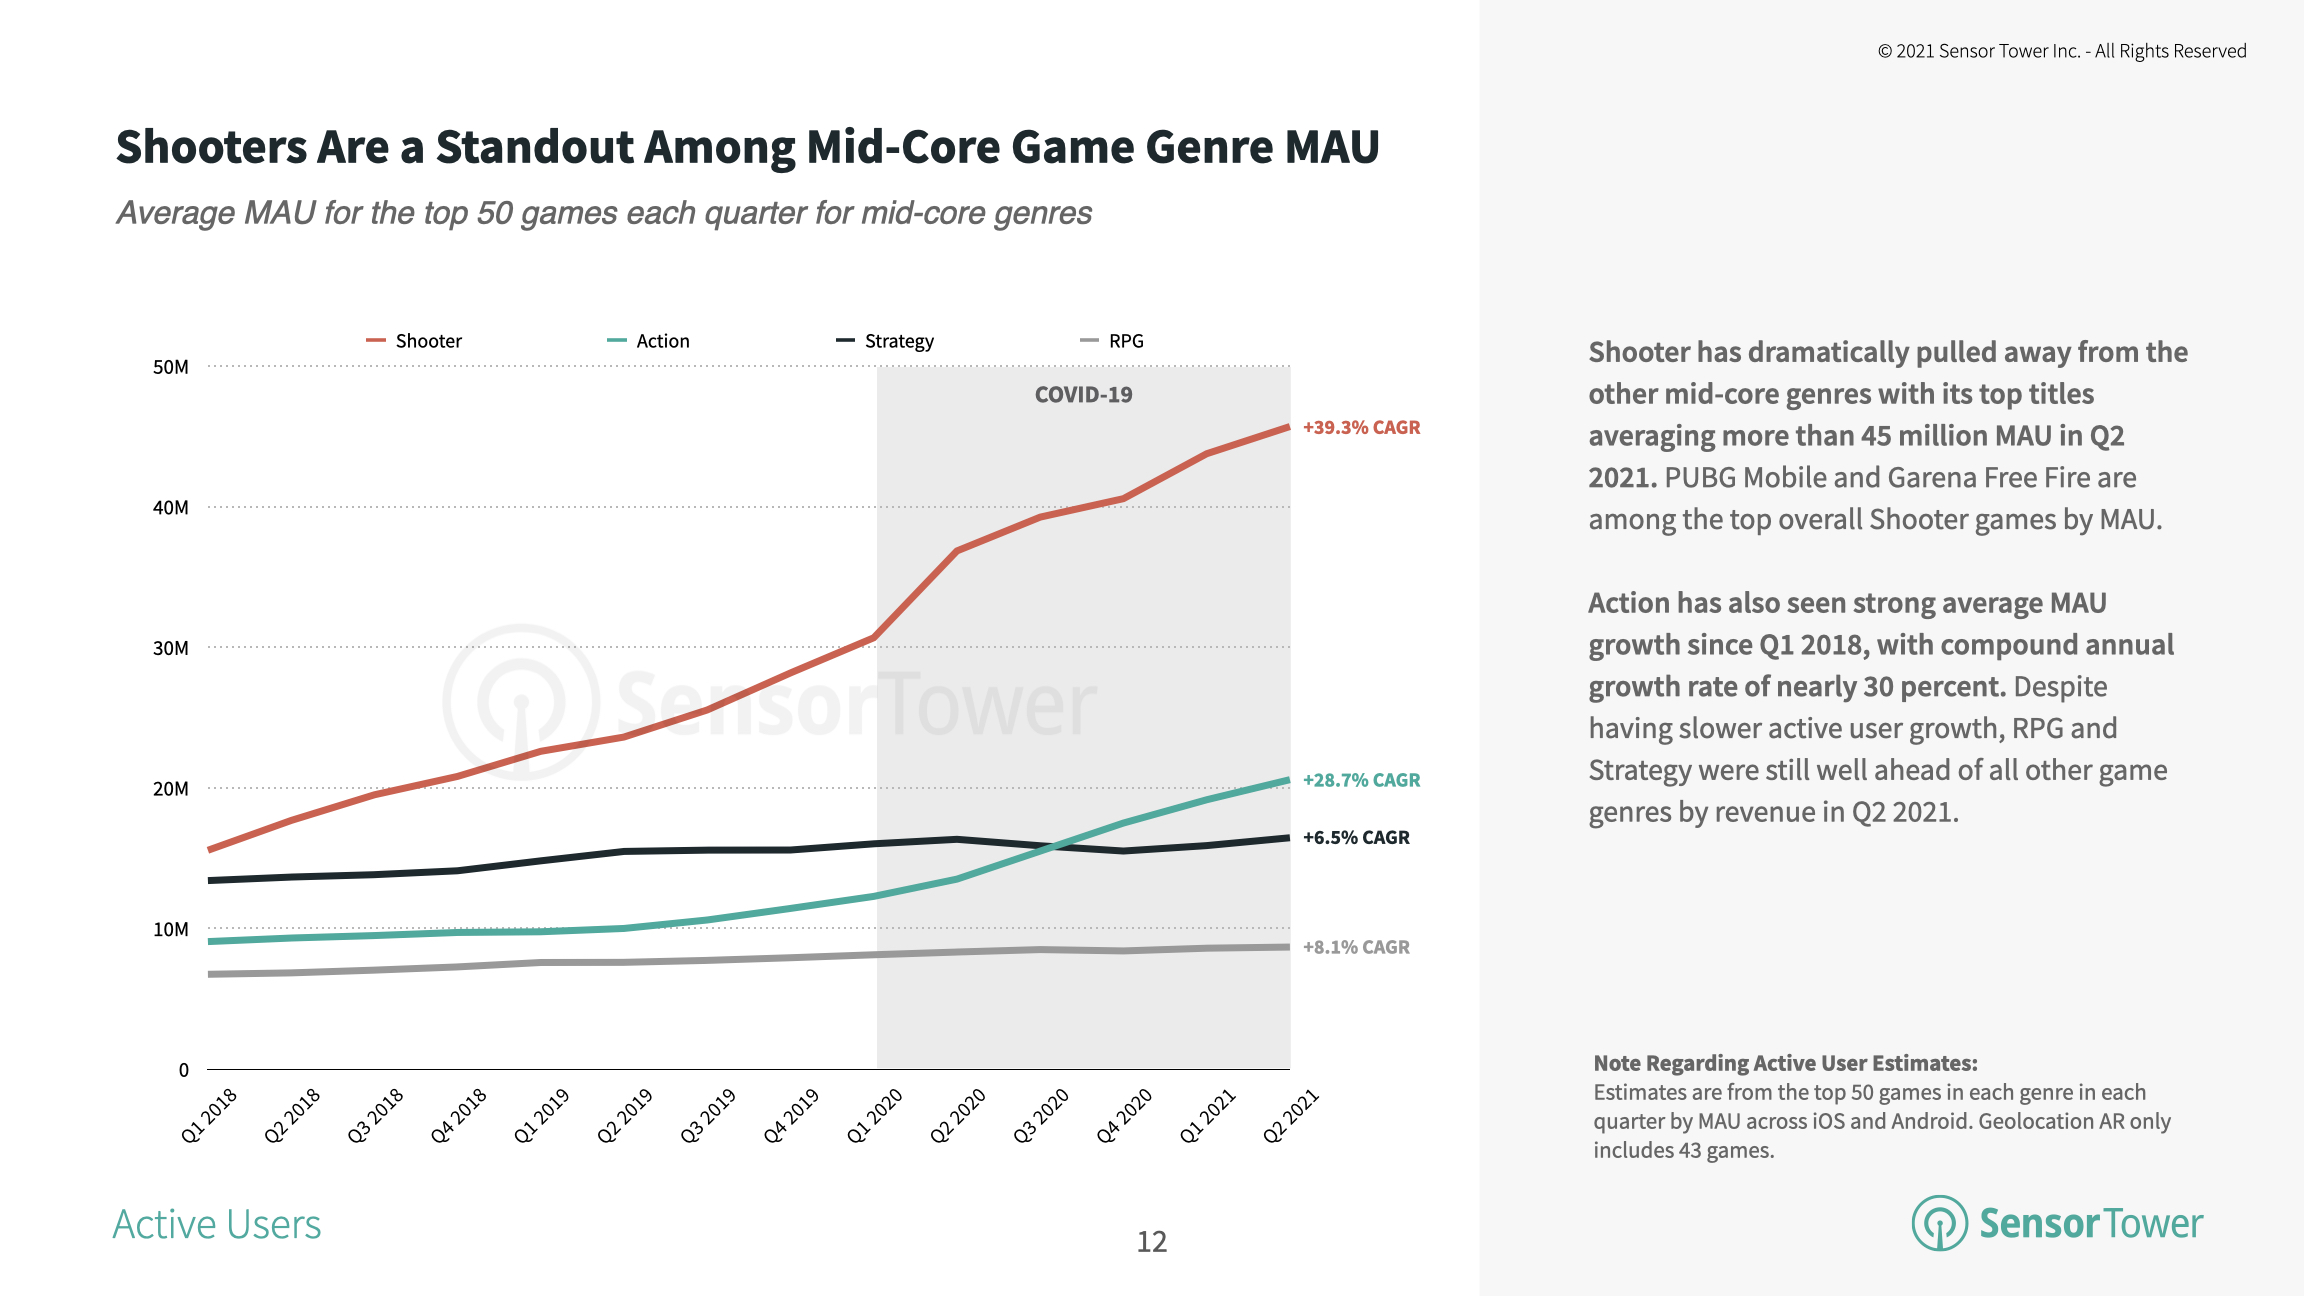 The top 50 shooter games averaged 7.6 million daily active users in Q2 2021